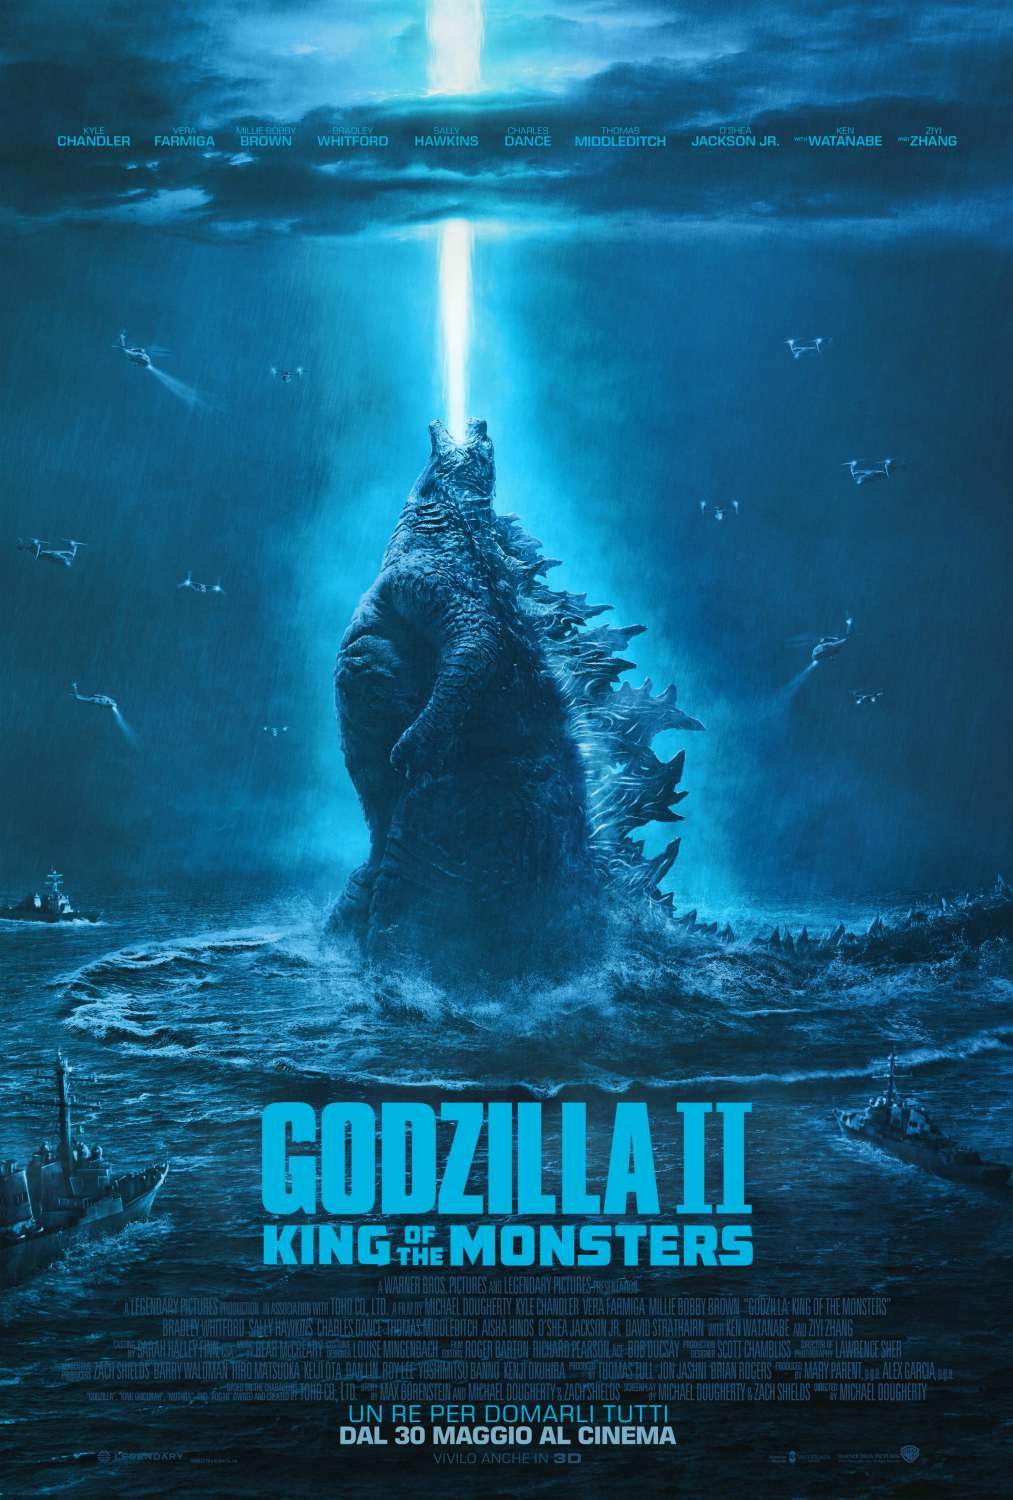 Godzilla 2 King of the Monsters (2019) ゴジラ Official Full Movie Free Online